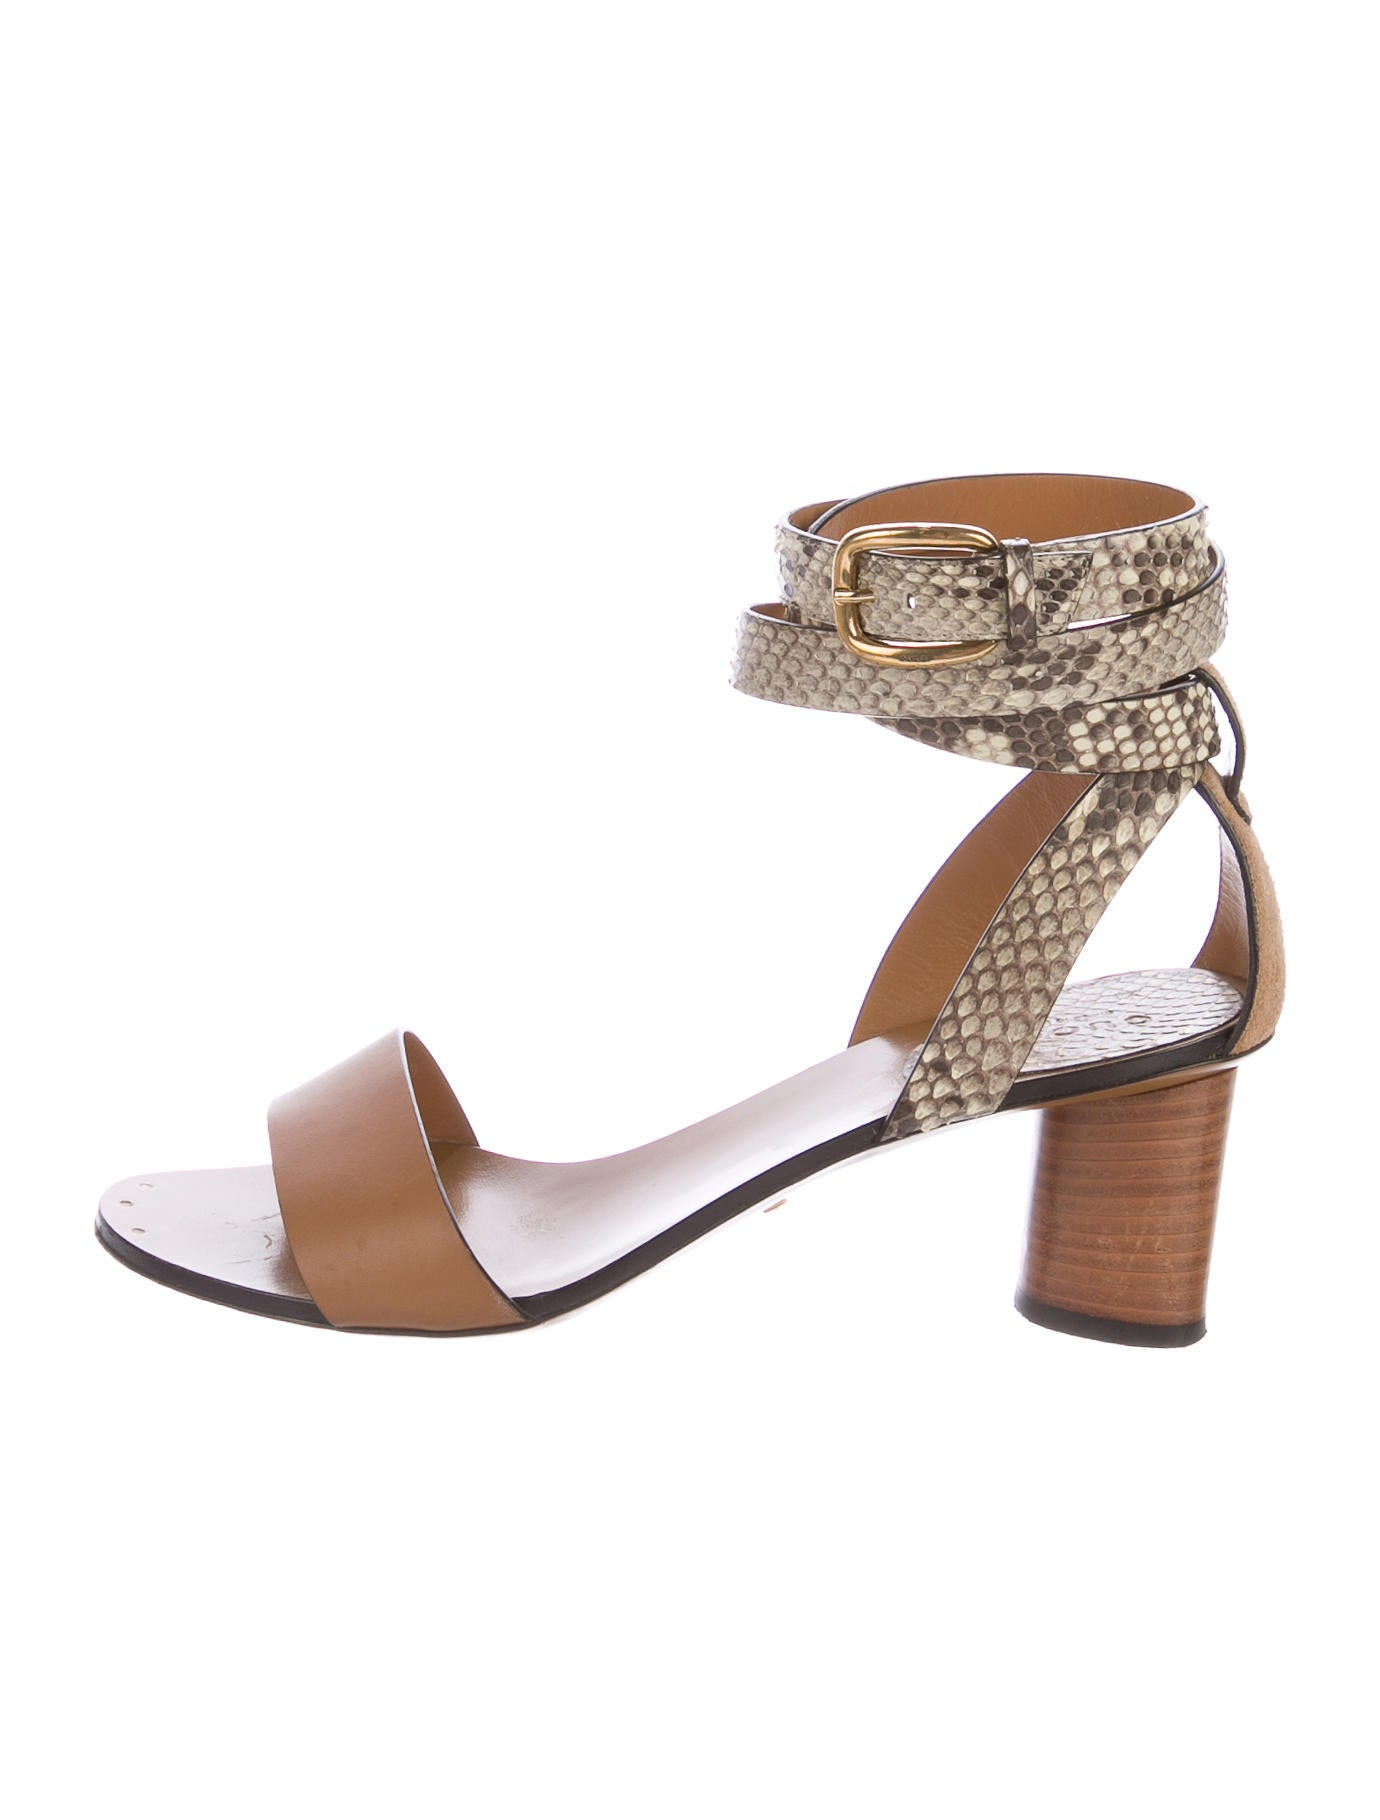 Gucci Snakeskin Trimmed Sandals Shoes Guc157191 The